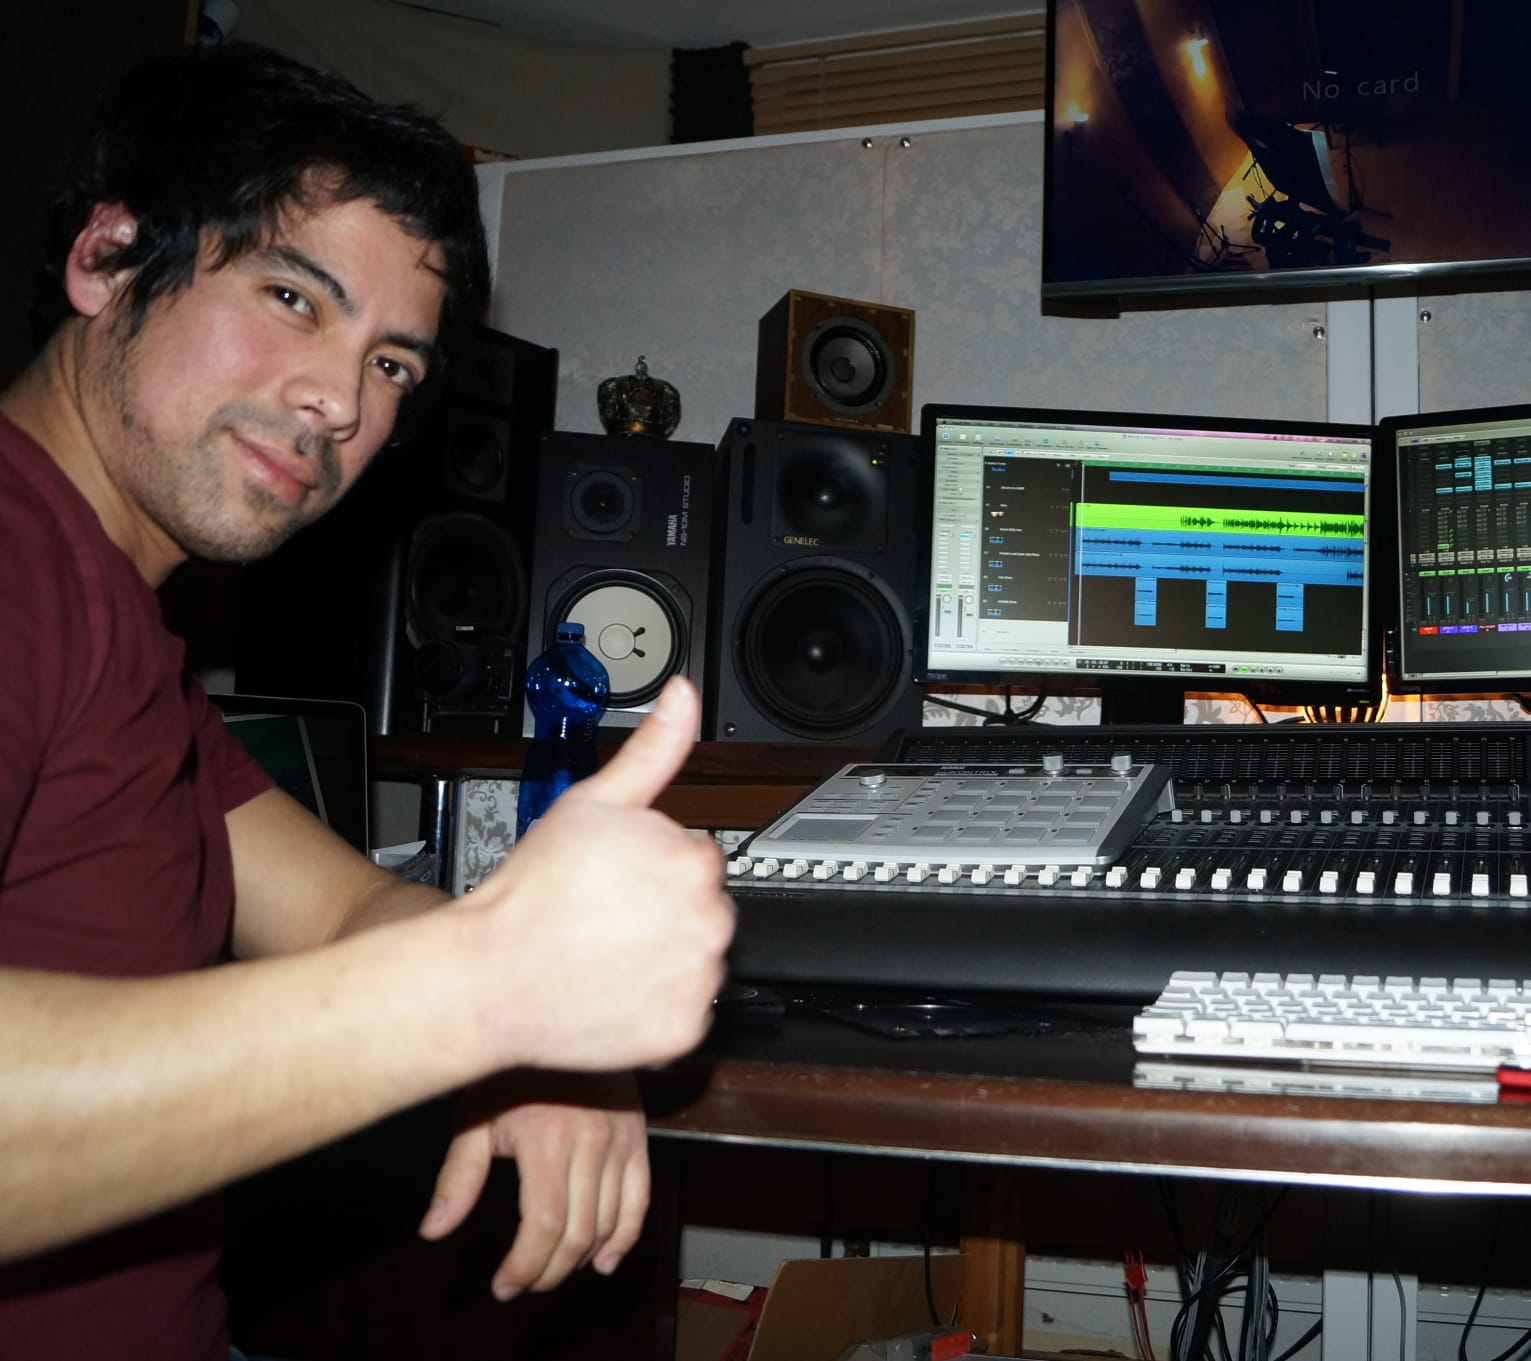 Recording session & Album production at Grooveloft Media & Musik Produktion in 2018 (Leichlingen, Germany). Photo by H.Z.